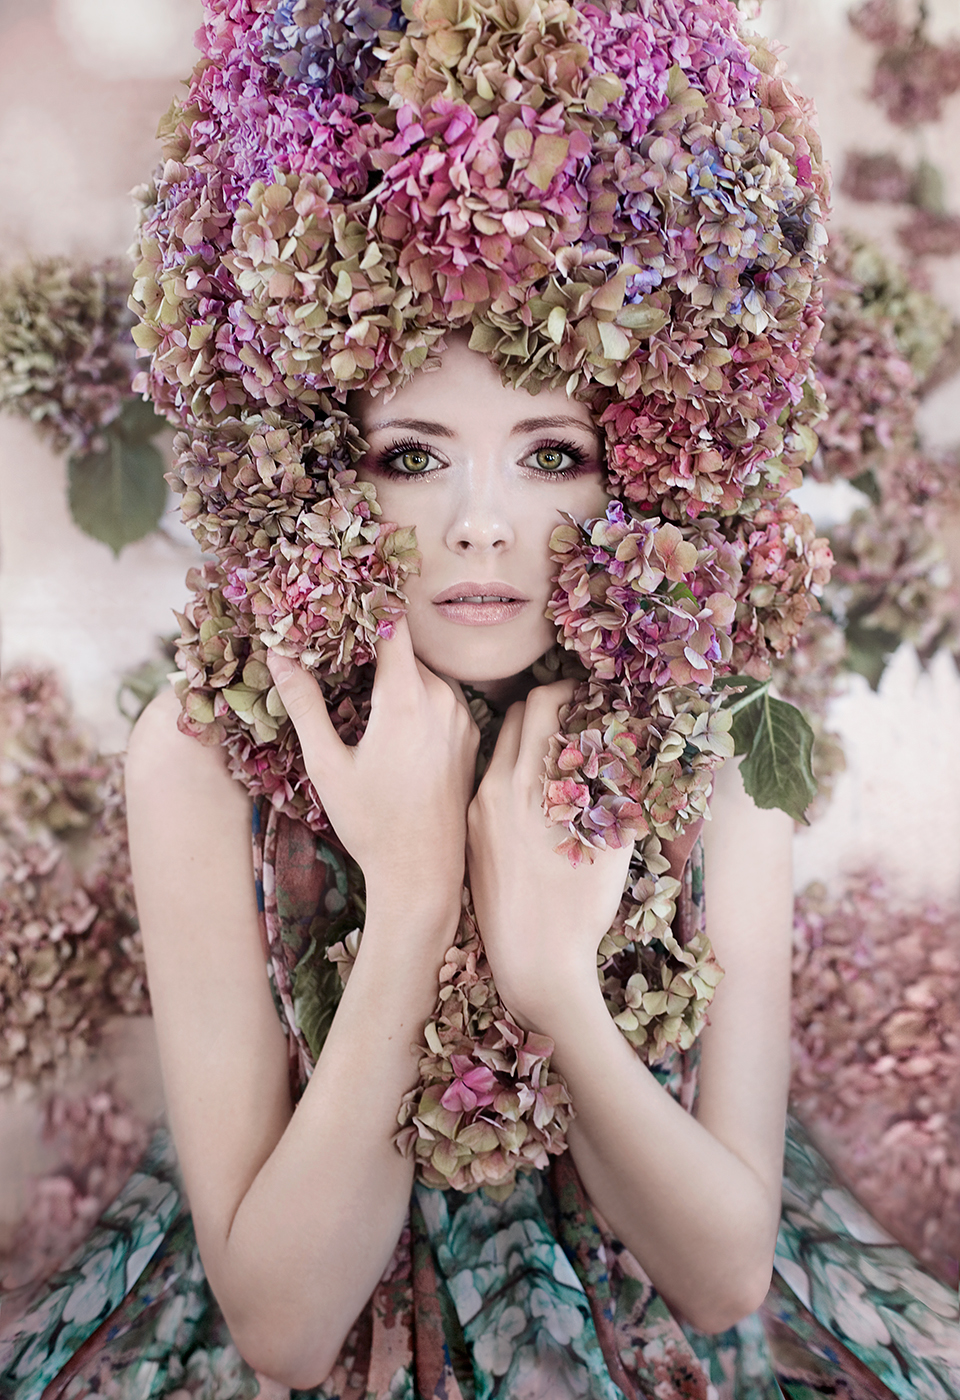 Kirsty Mitchell - The Wonderland Project